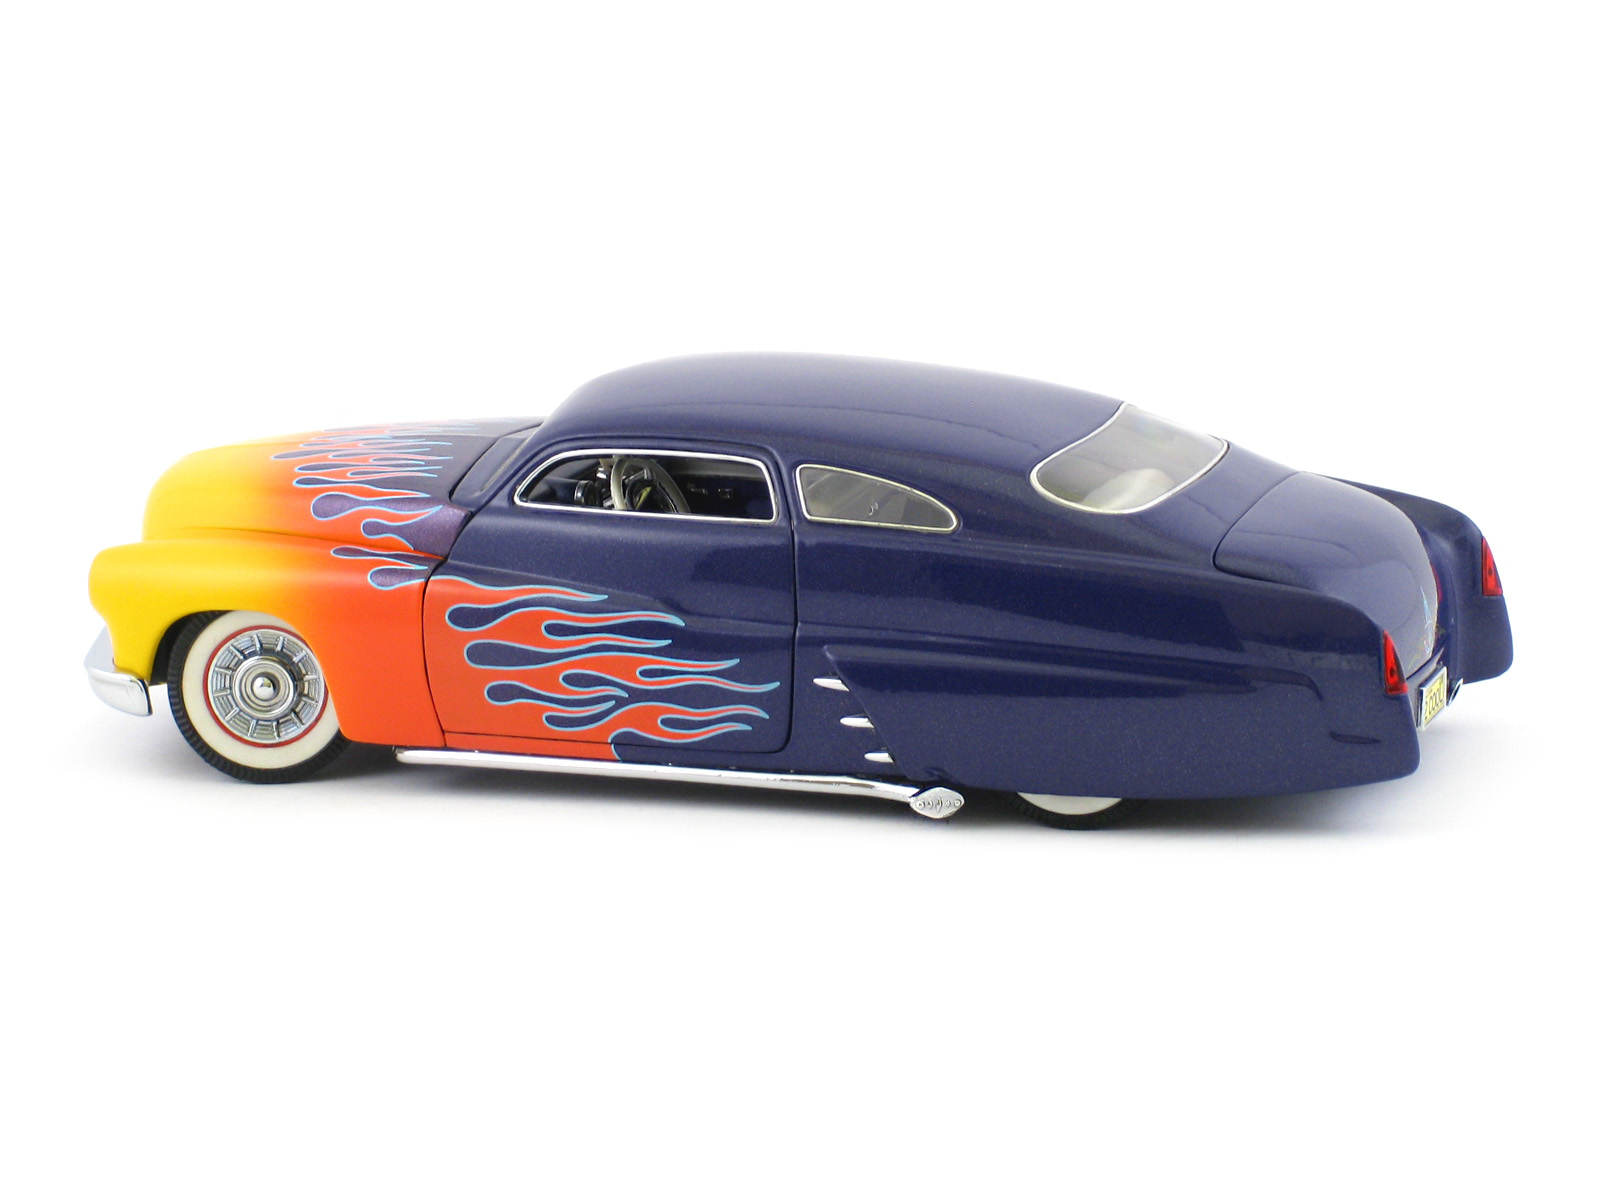 pagani facebook with 1949 Mercury Custom Hot Wheels Legend on 1949 Mercury Custom Hot Wheels Legend in addition 2018 Honda Accord Hybrid Is More Affordable Than Ever likewise Gallery likewise 2018 Gt R Price additionally Best Hypercars 2016 Pictures.